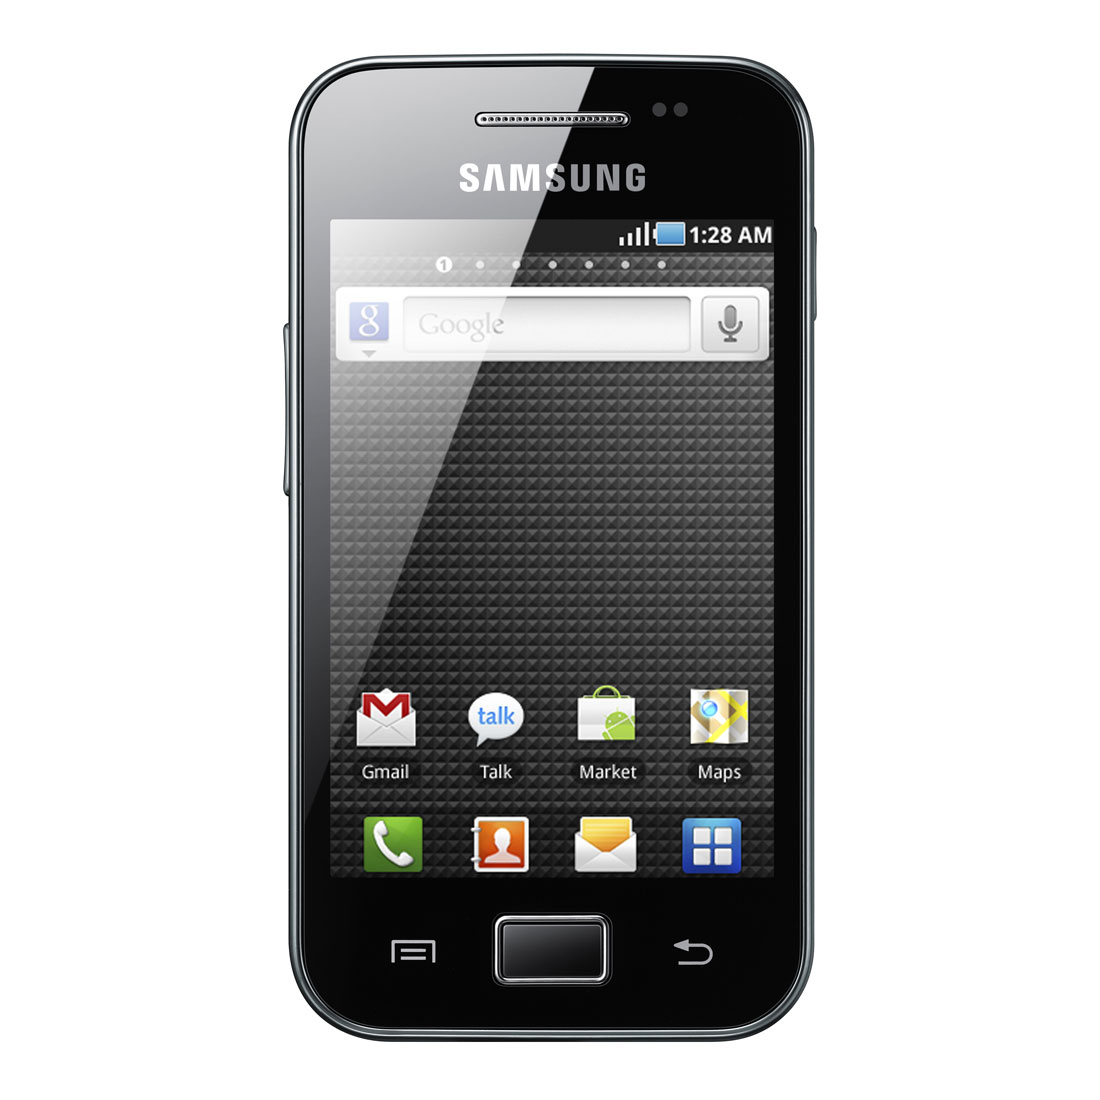 Samsung S5830 Galaxy Ace Unlocked Phone Black Review and Manual